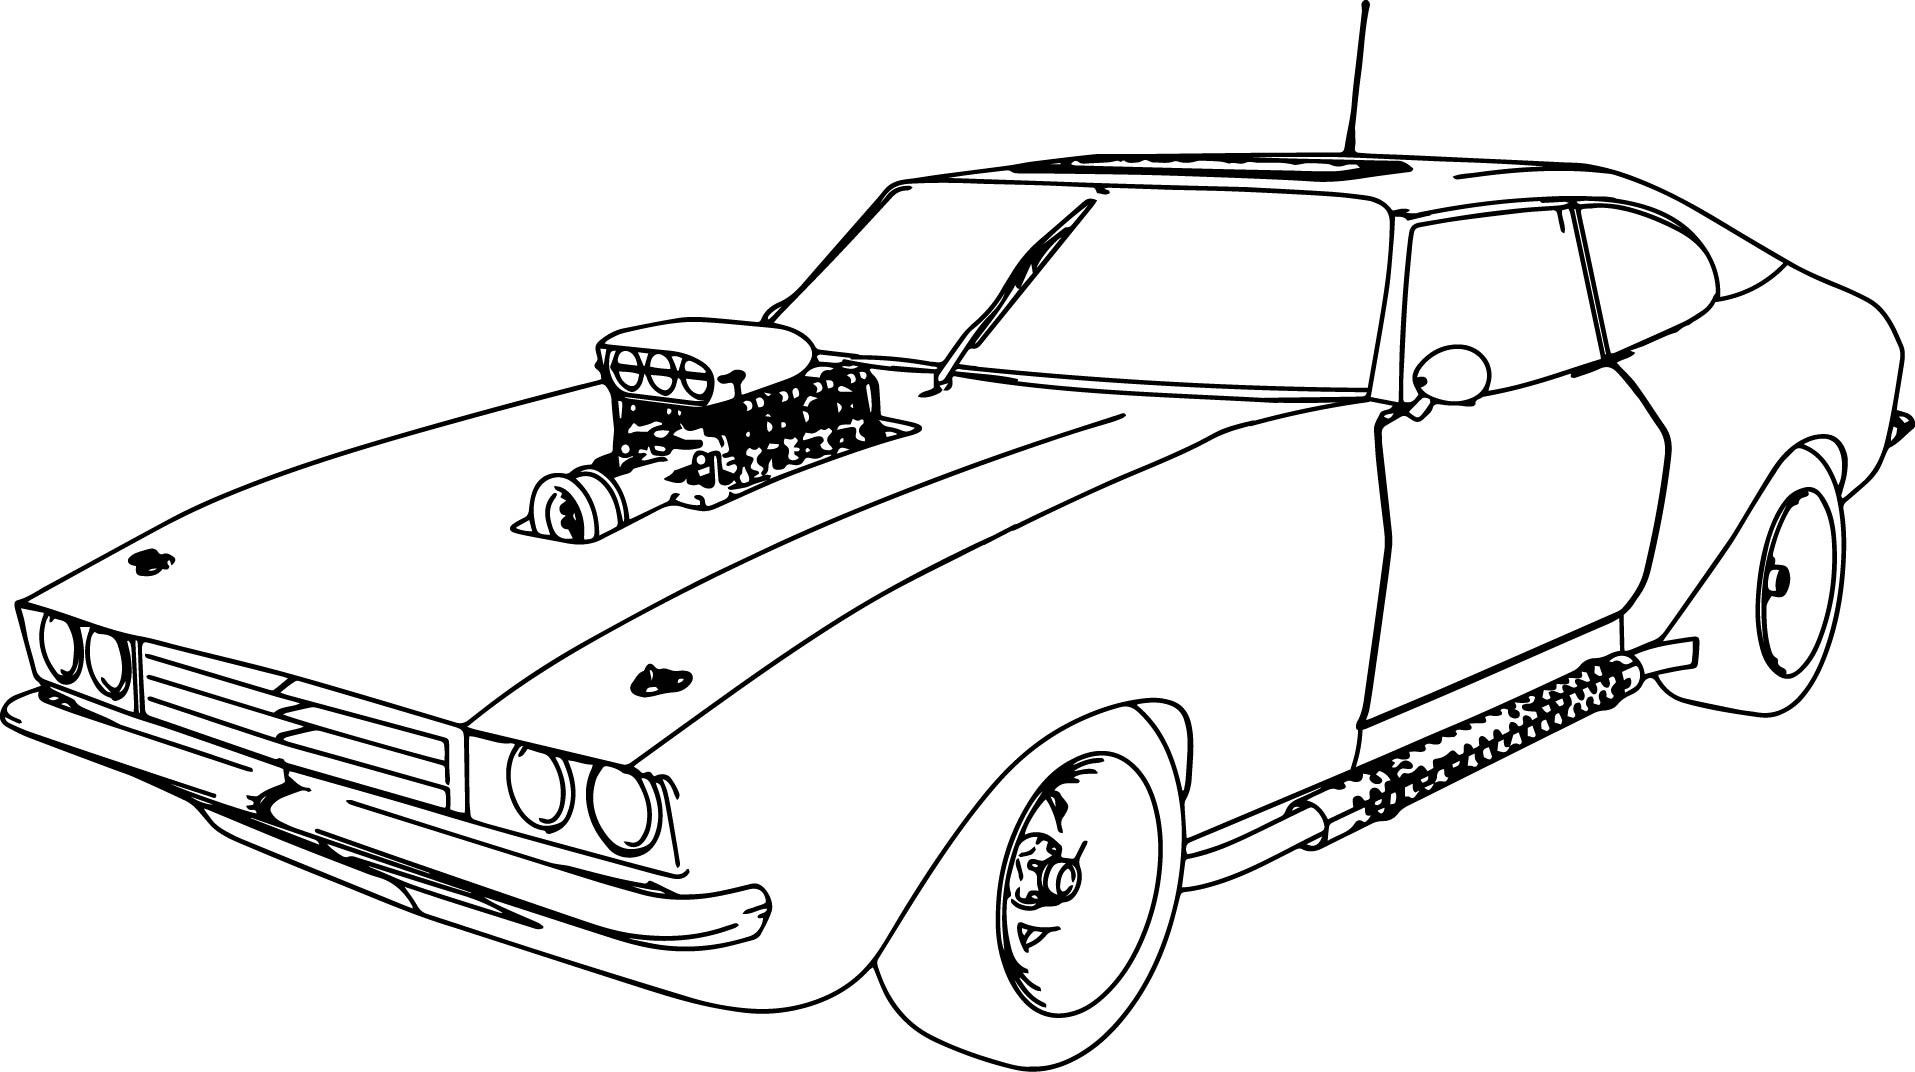 race car coloring sheets printables race car coloring pages to print at getdrawings free race car sheets coloring printables